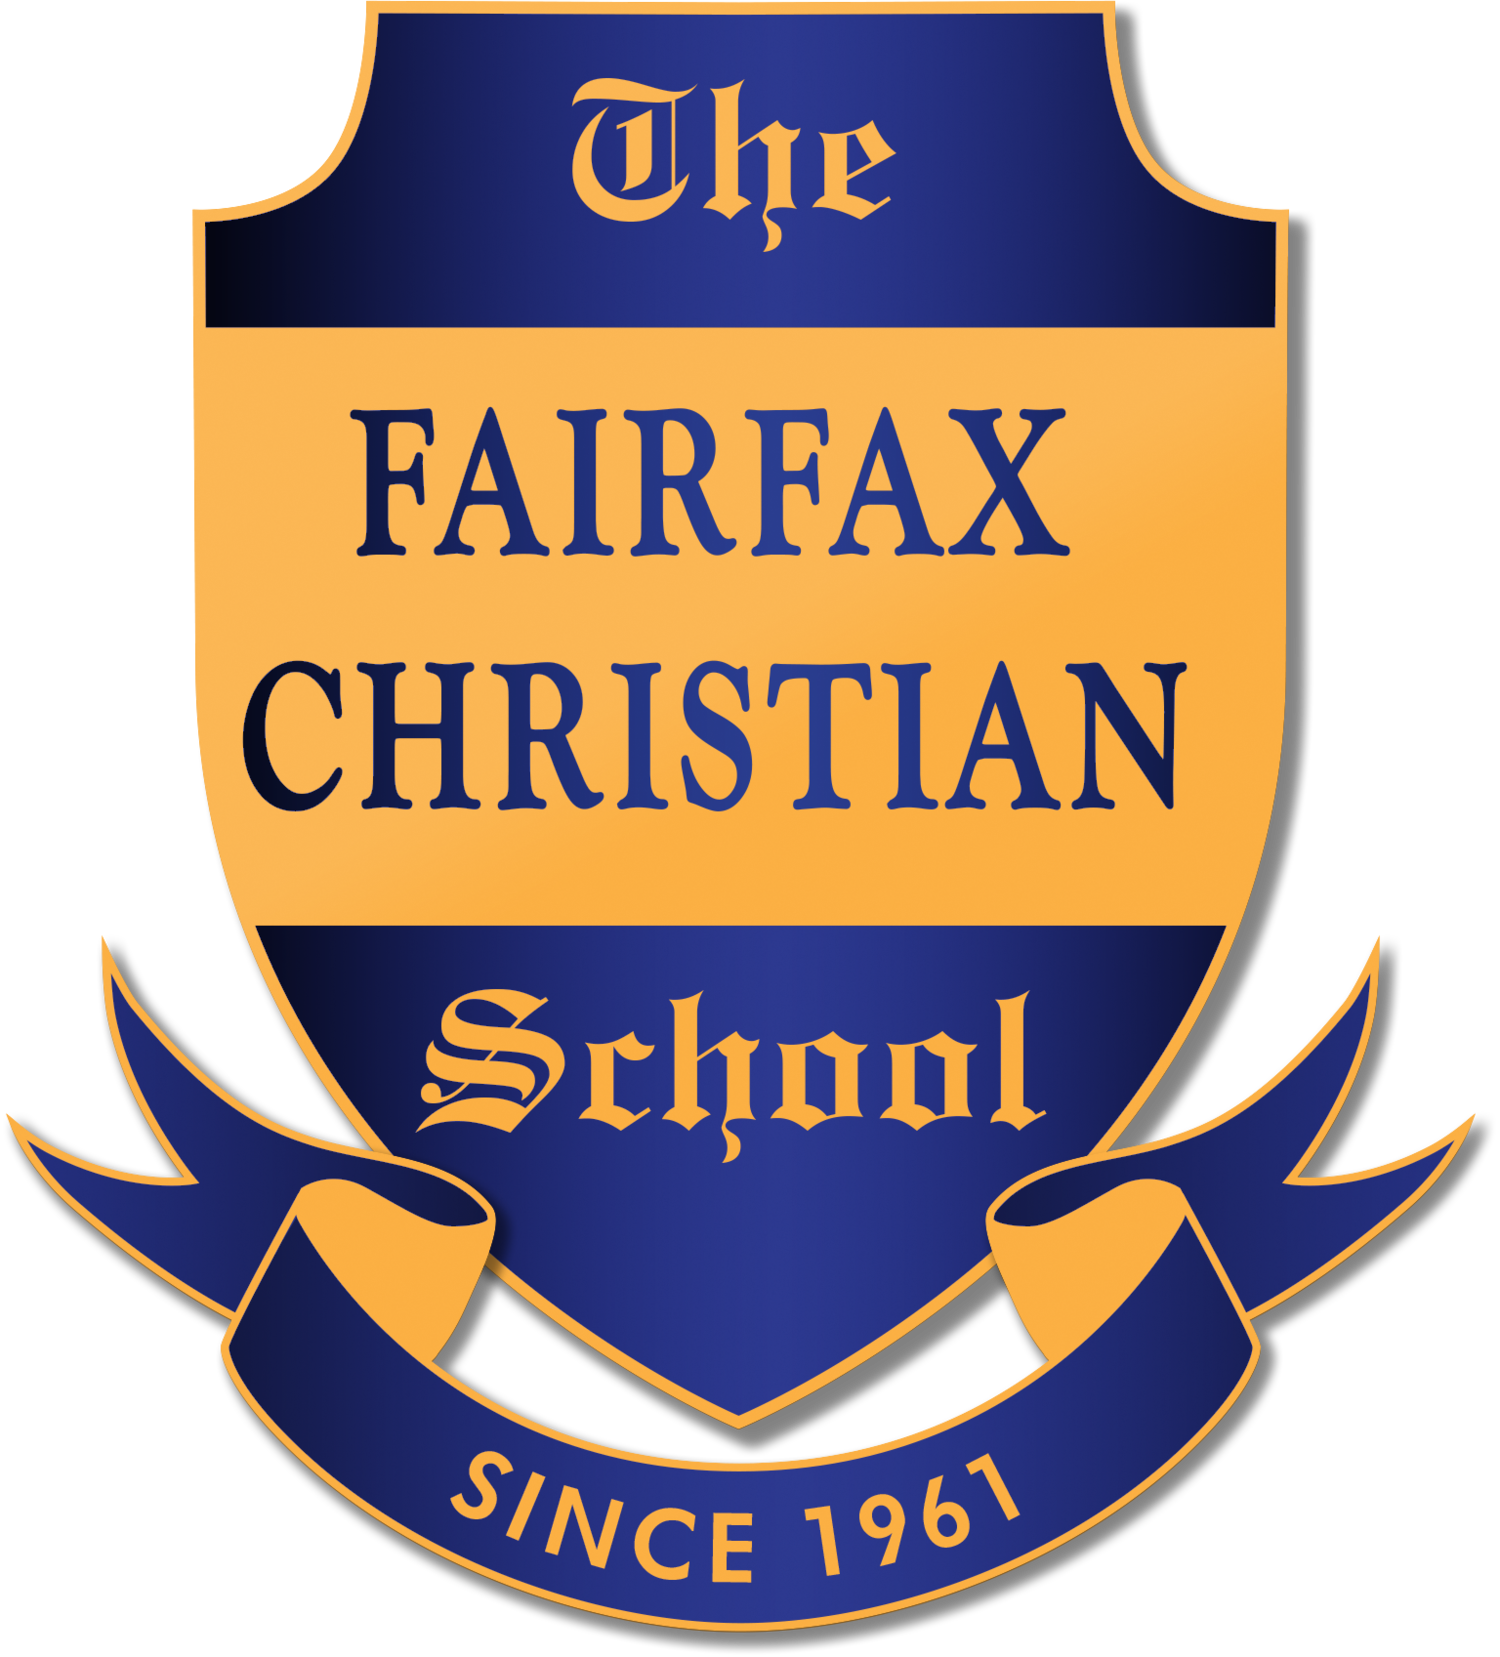 The Fairfax Christian School